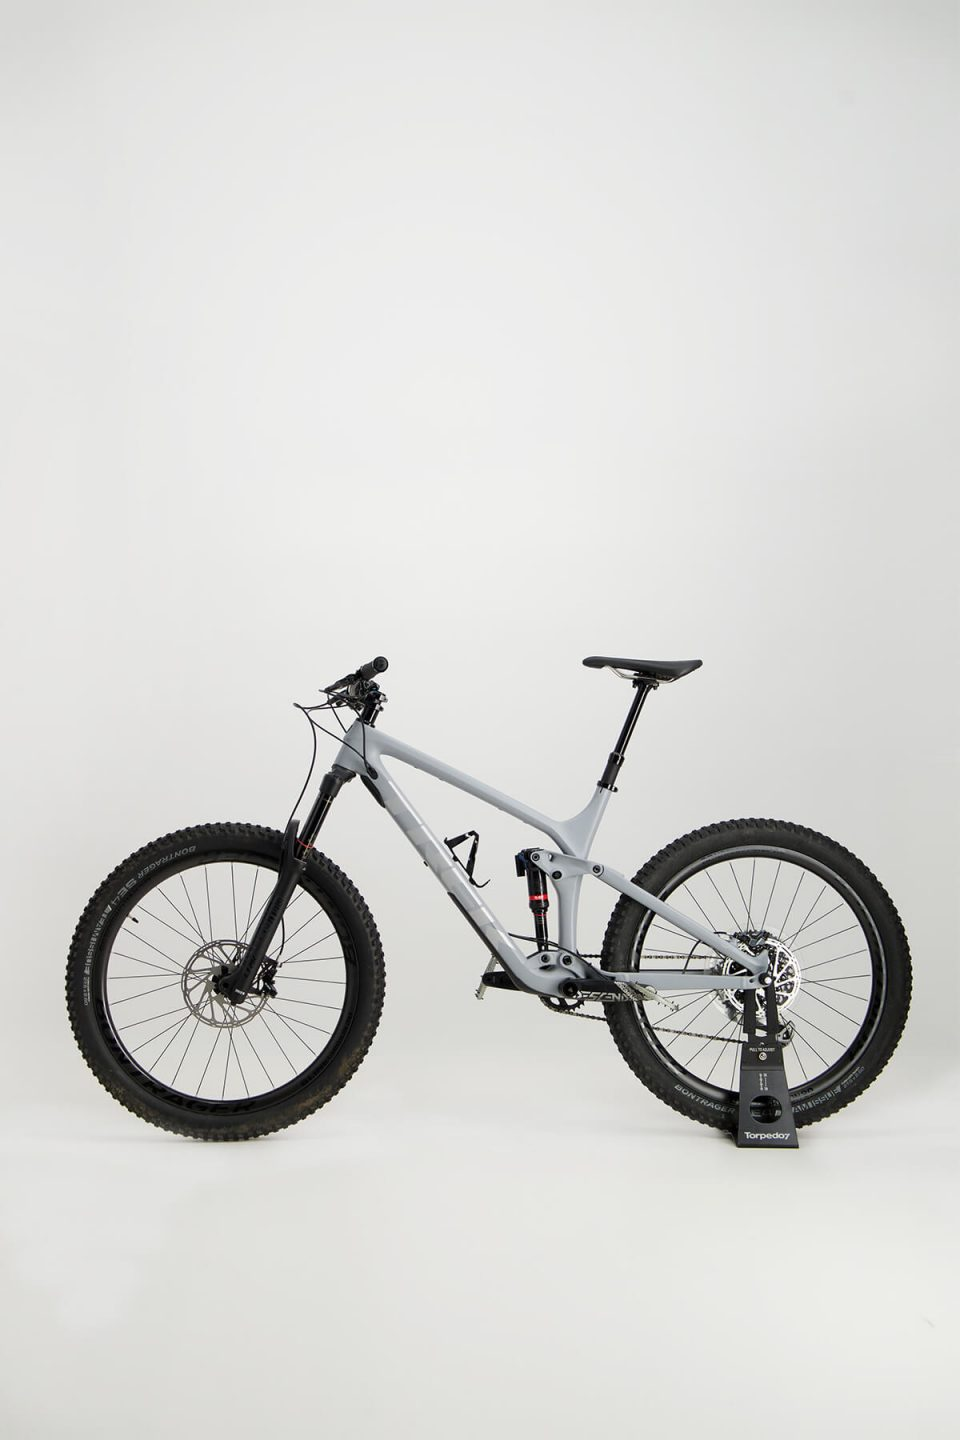 Product photography of bikes and large sporting equipment